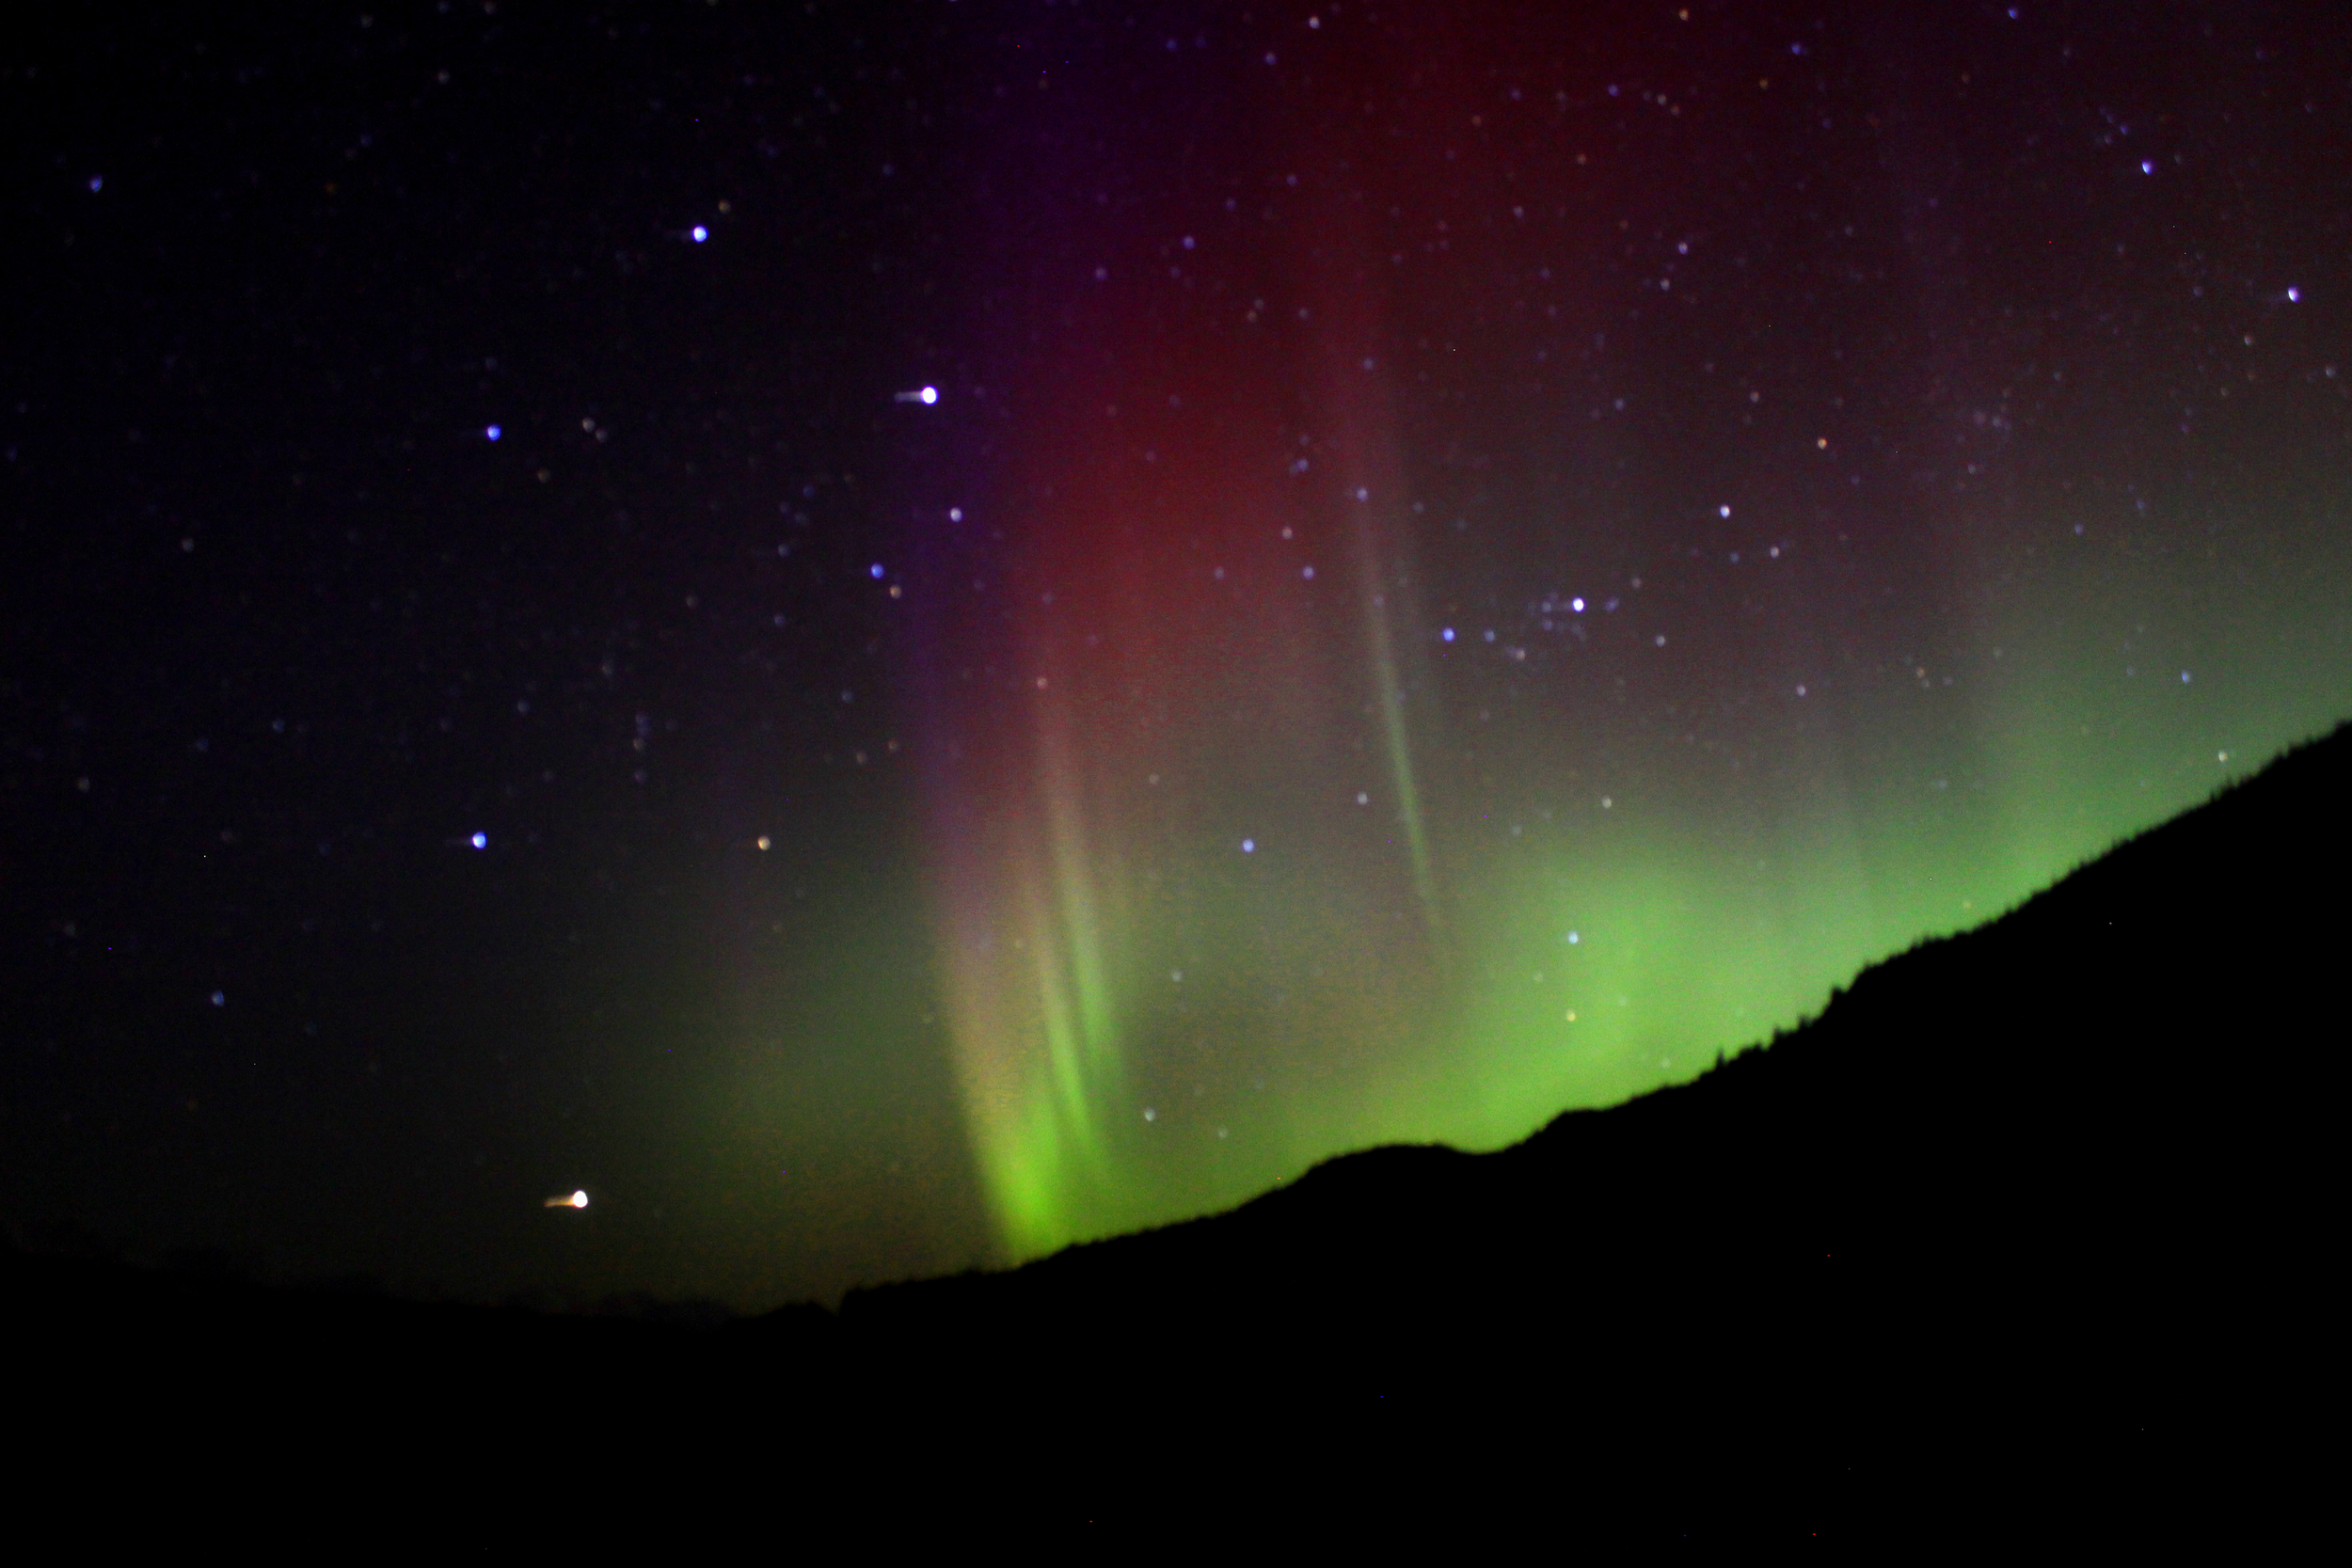 This was my first time seeing reds and purples in the aurora. What an awesome sight!